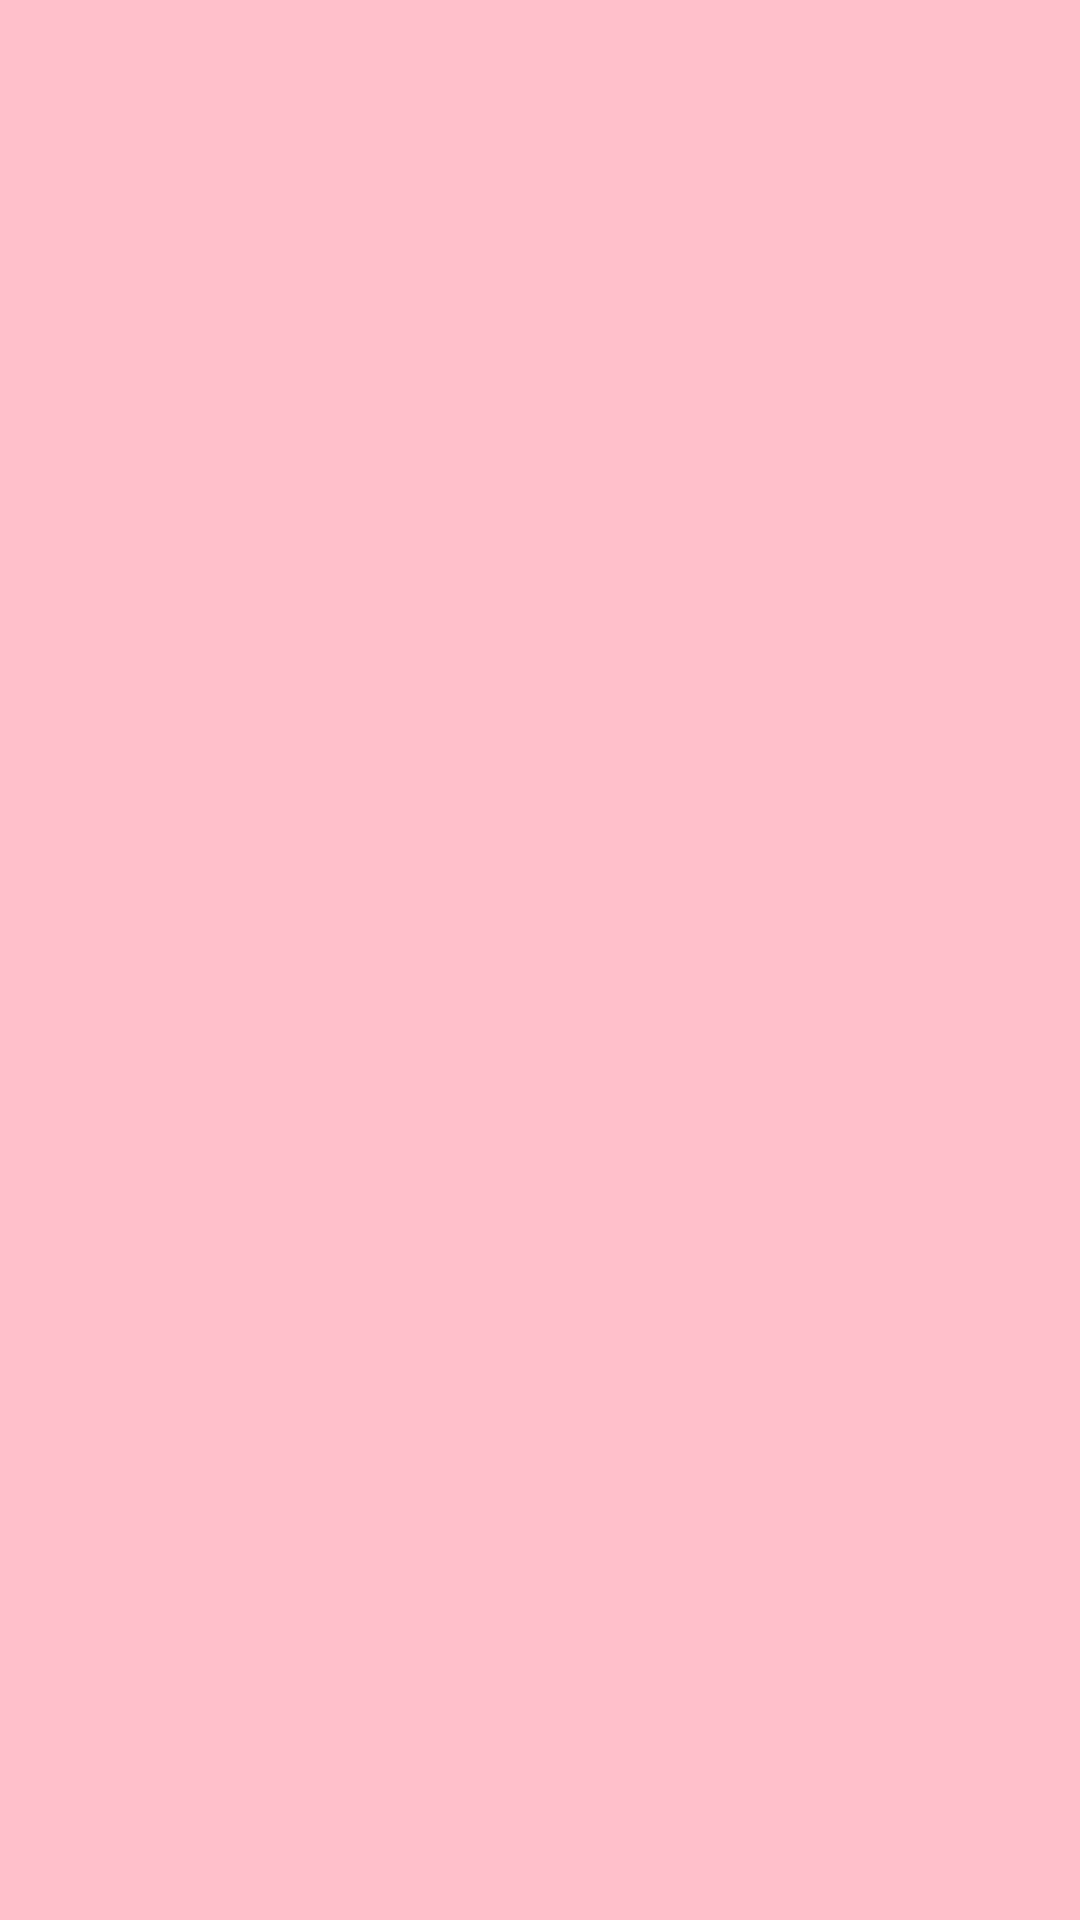 1080x1920 Pink Solid Color Background